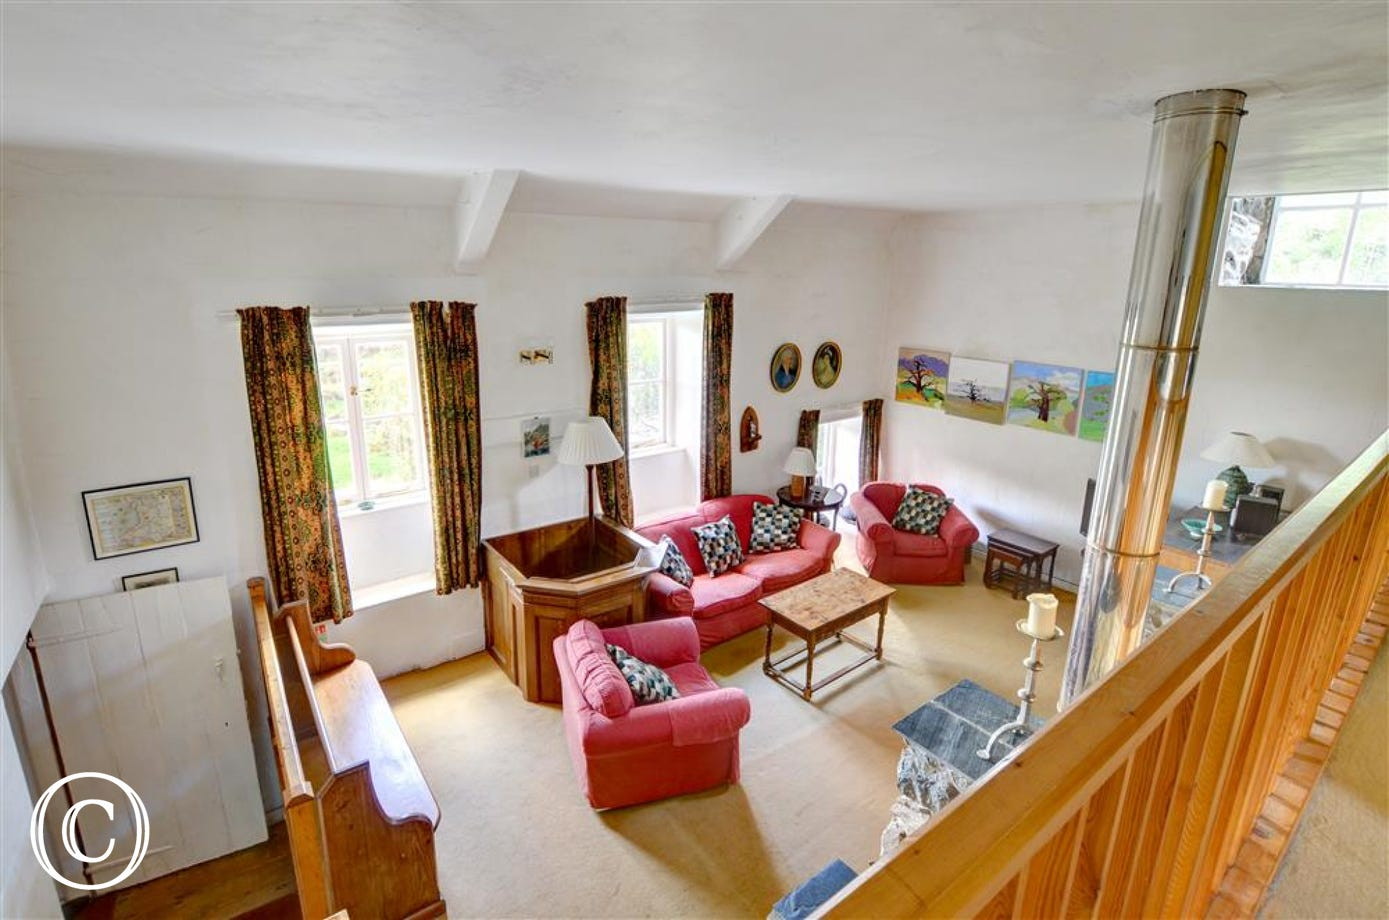 The sitting room, viewed from the galleried bedrooms above